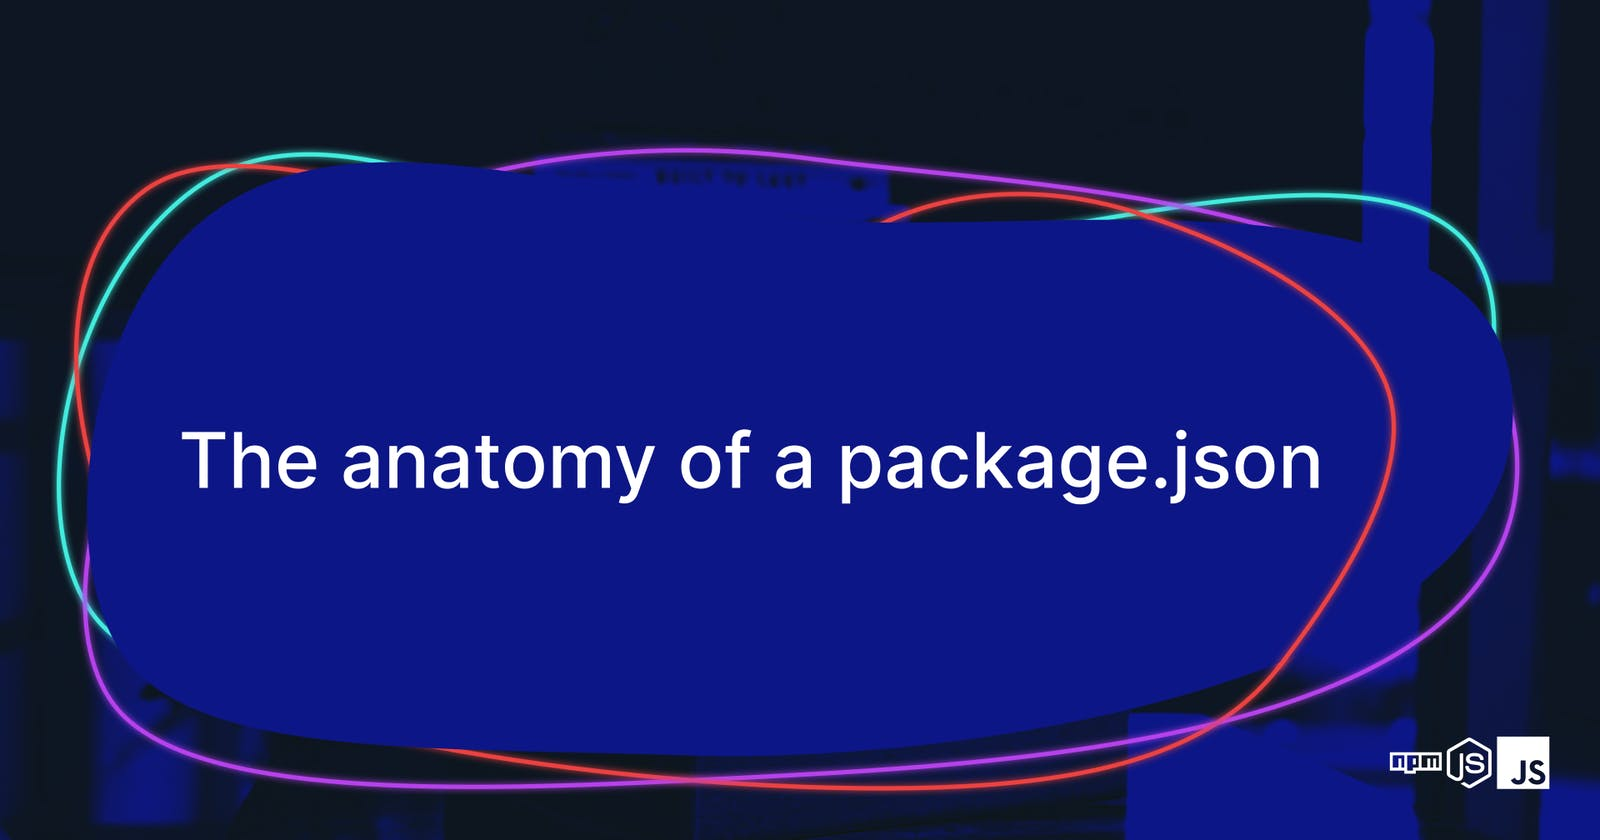 The anatomy of a package.json